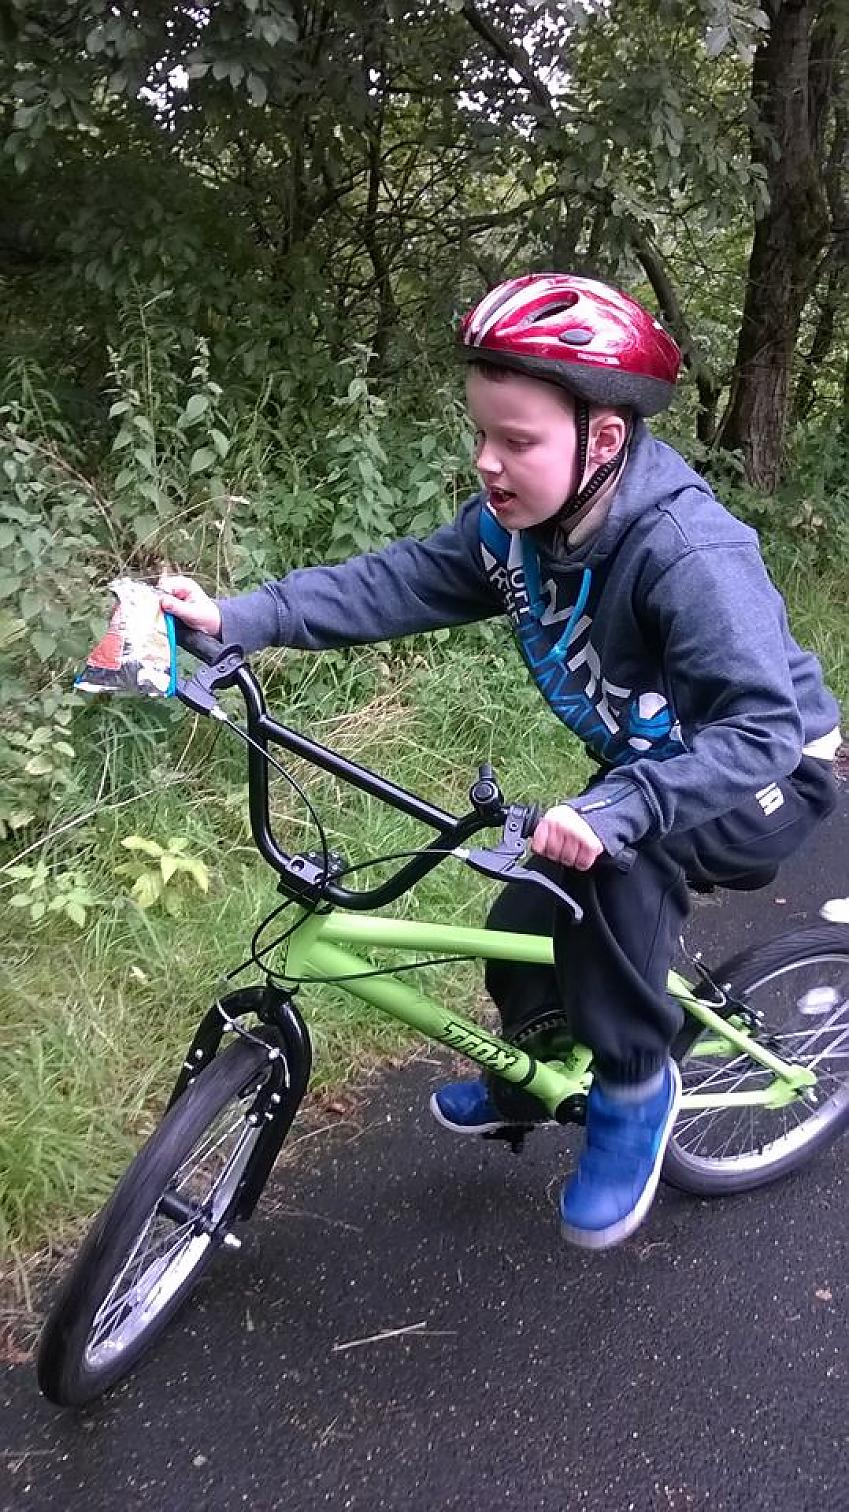 A child riding a bike